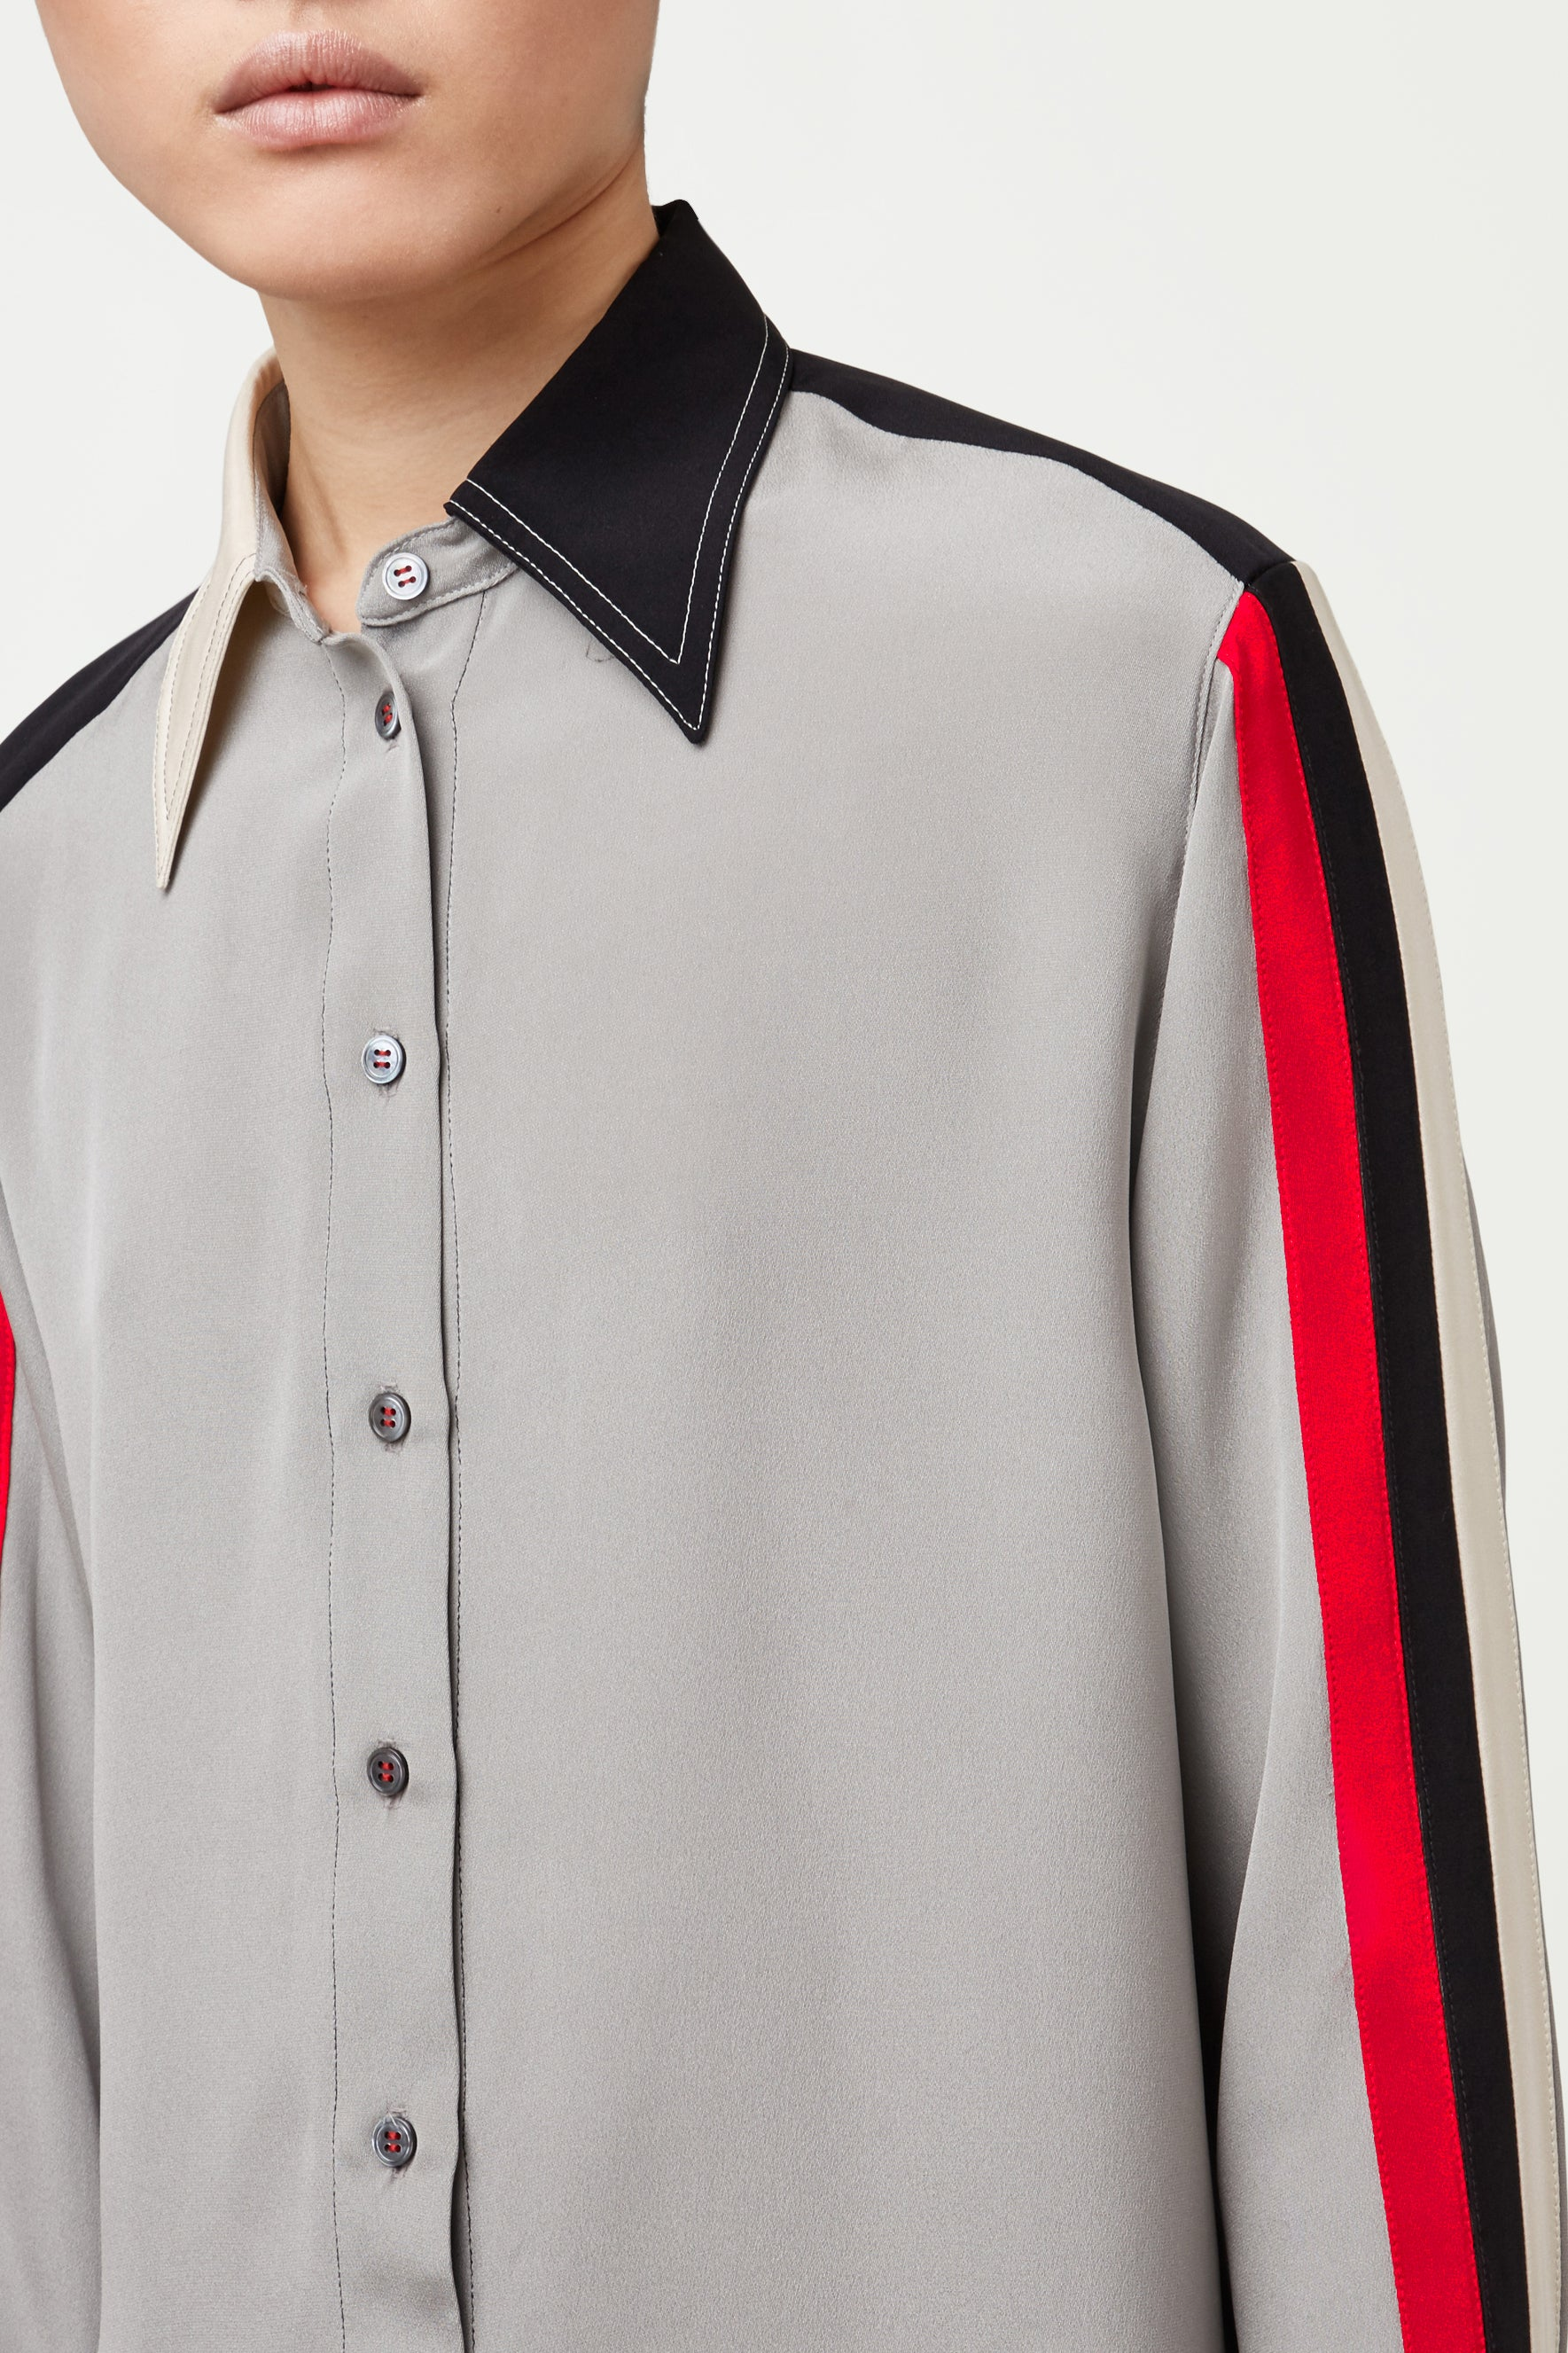 The Oversized Shirt - Steel, Black, White & Red Silk - SERENA BUTE